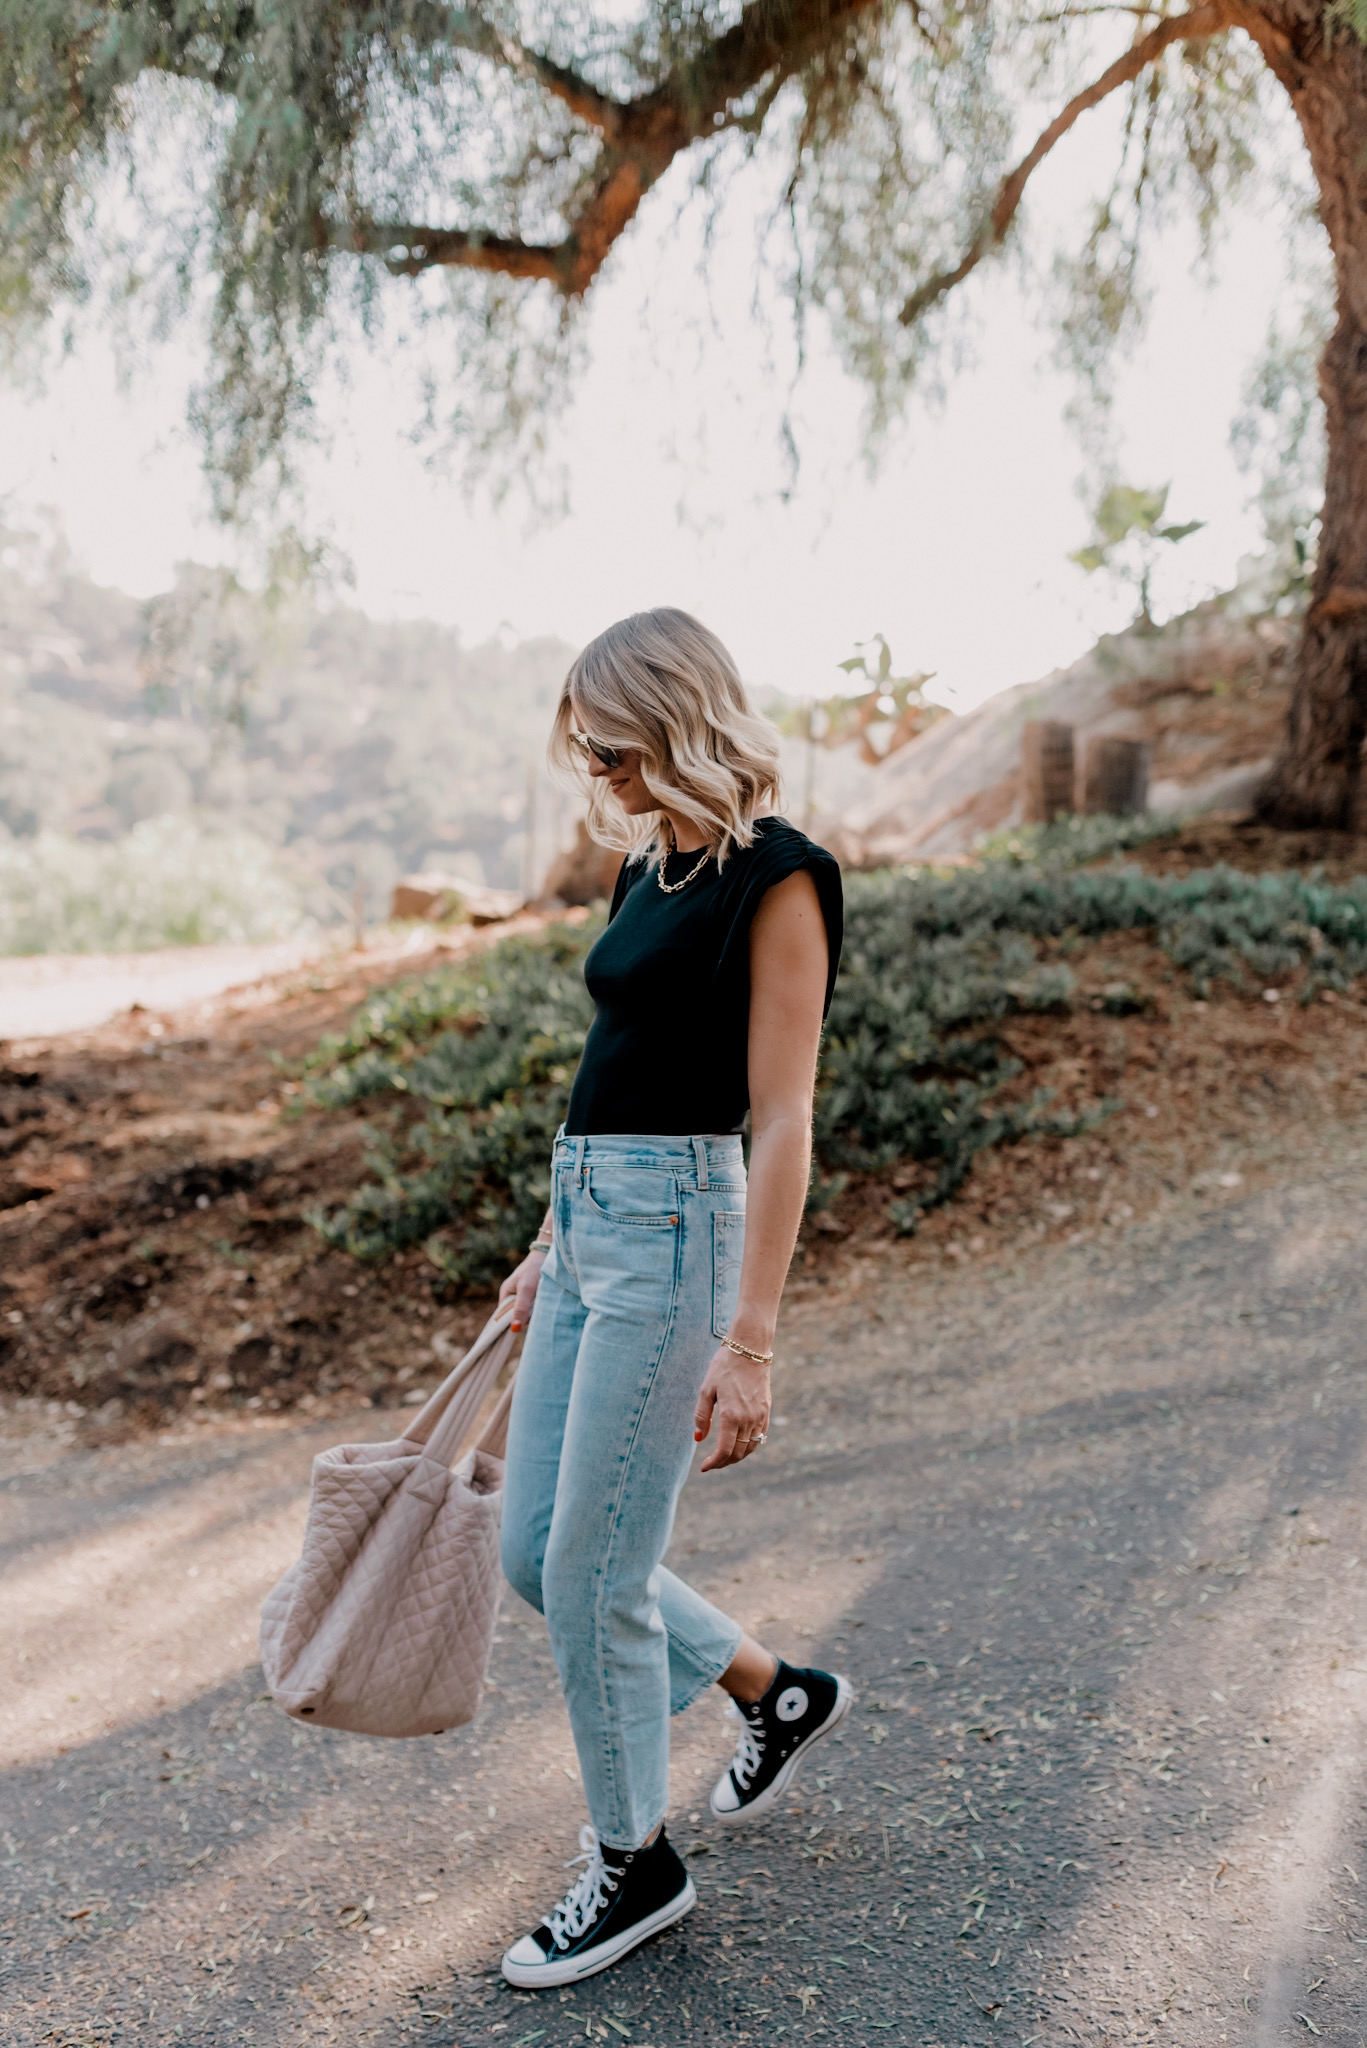 Top Sellers by popular San Diego fashion blog, Navy Grace: image of a woman wearing a Padded Cap Sleeve Crew Neck Thong Bodysuit, Urban Outfitters Levi's Wedgie Straight Jean, Converse high top sneakers, and carrying a MZ Wallace bag.